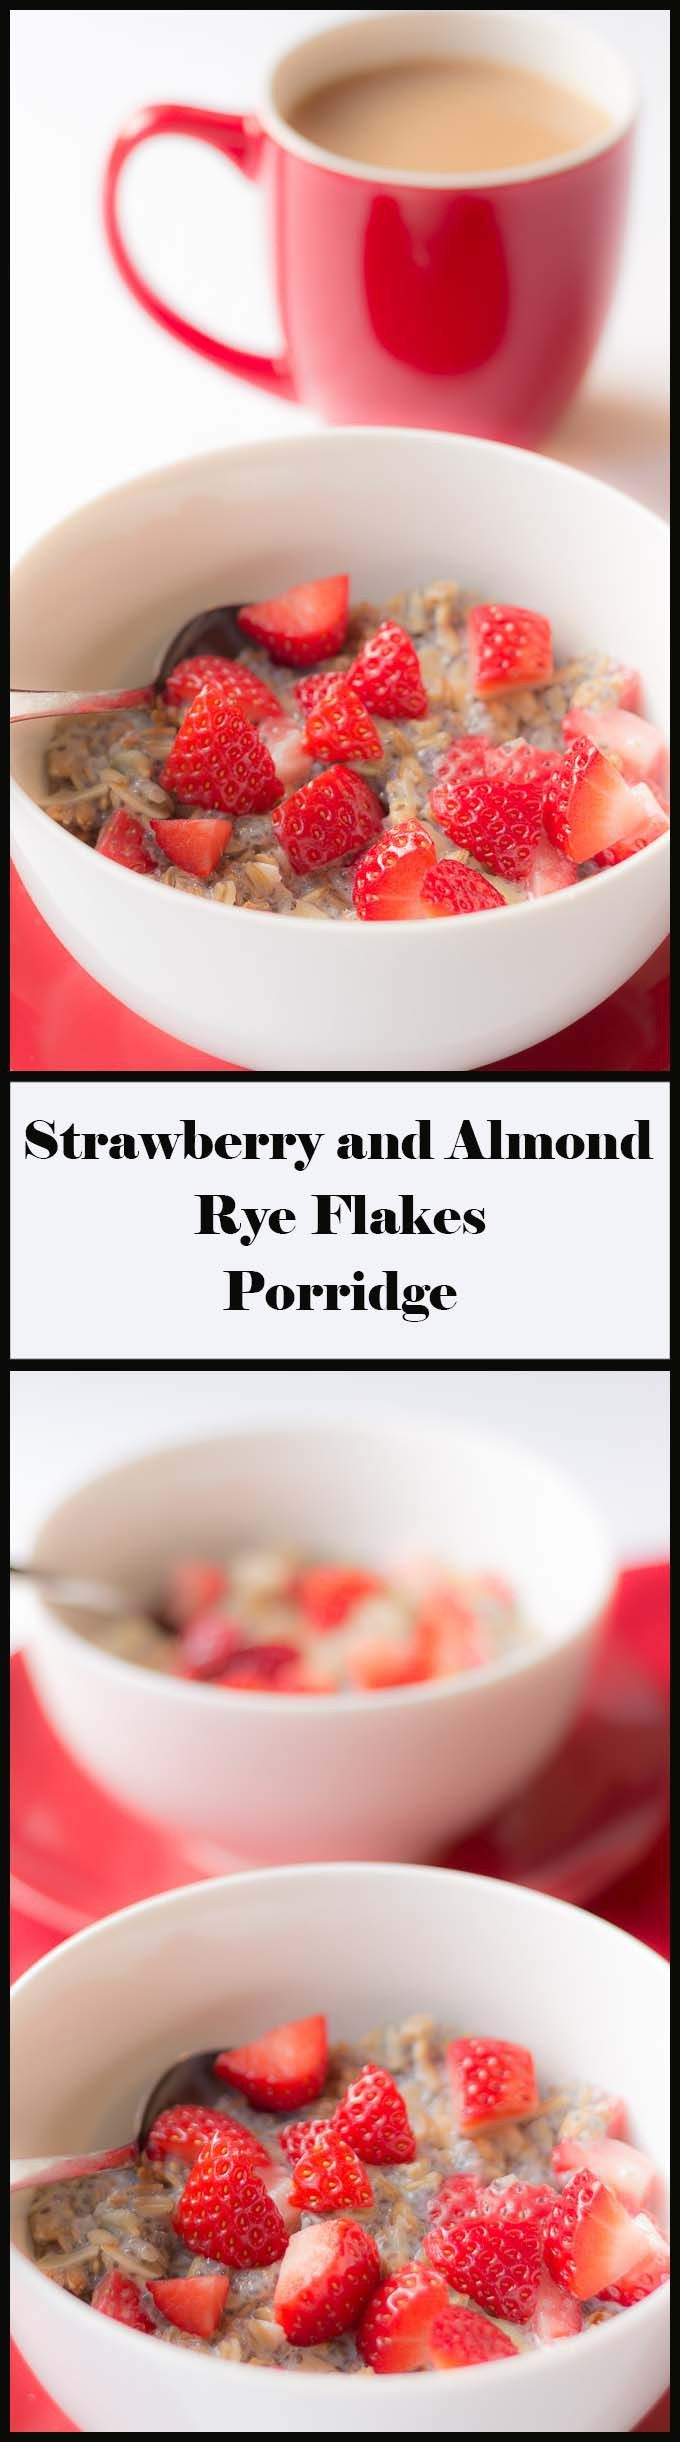 This bright, heart healthy, nutritious, tasty and naturally sweetened strawberry and almond rye flakes porridge breakfast will keep you fuller for longer!